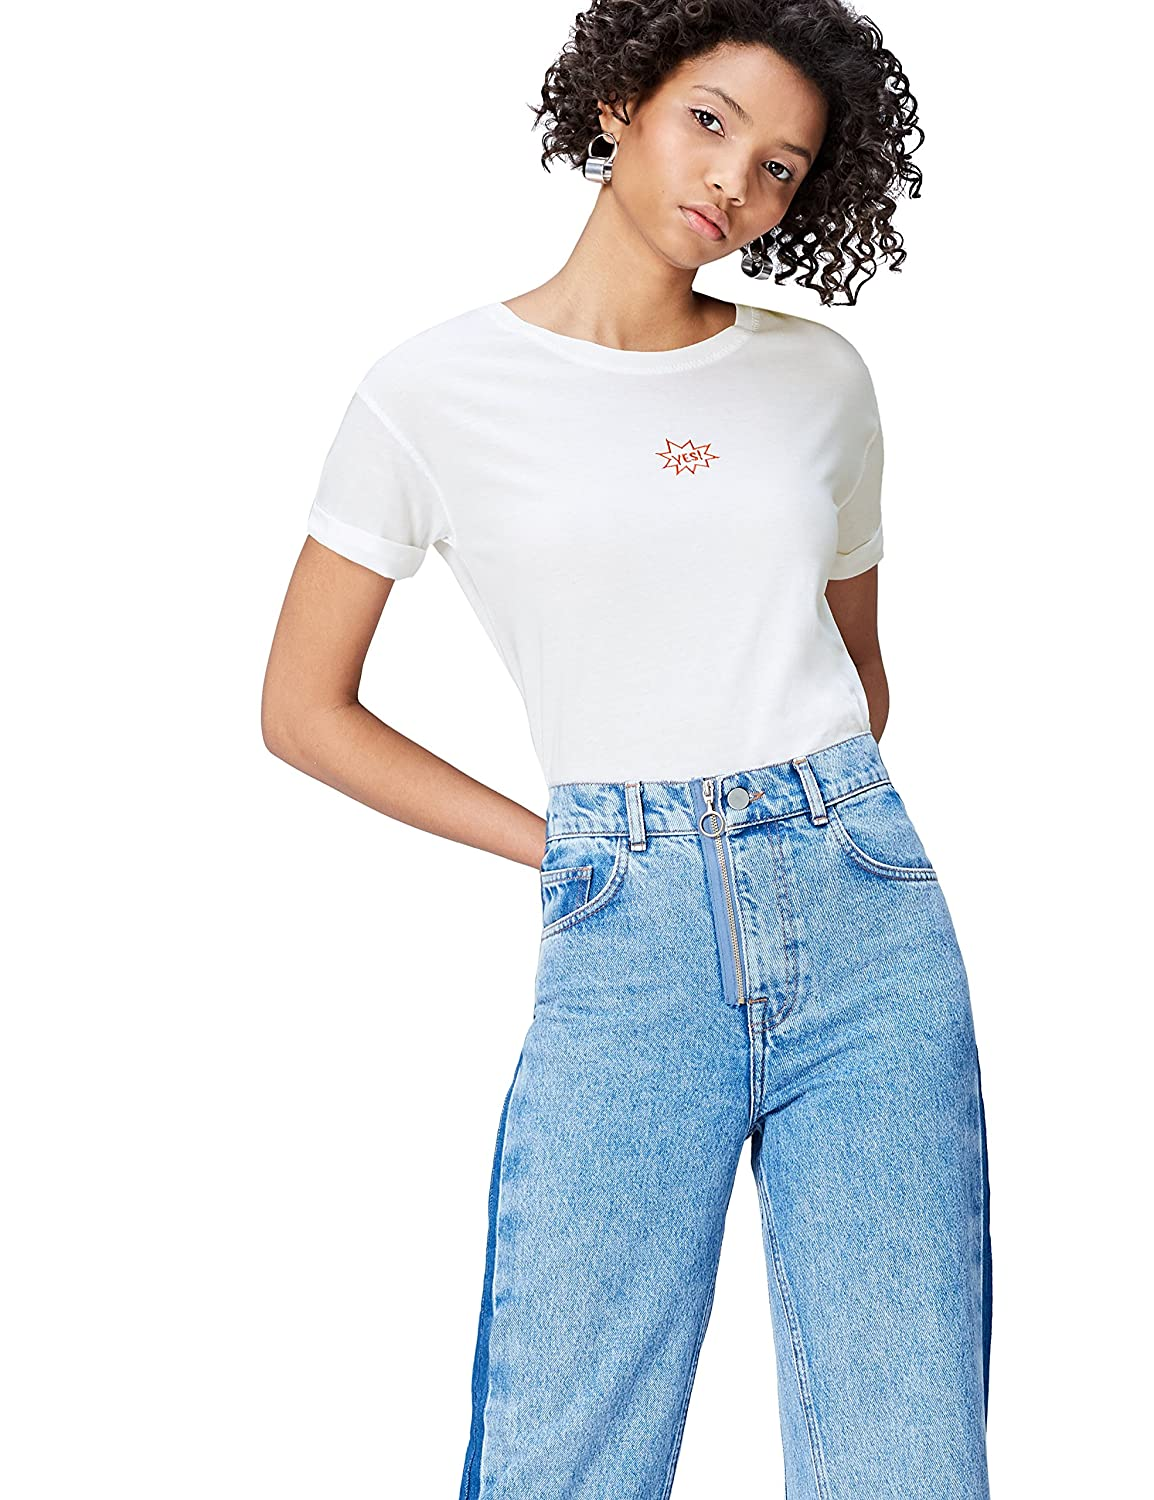 Find Women's T Shirt With Embroidered 'yes' Slogan by